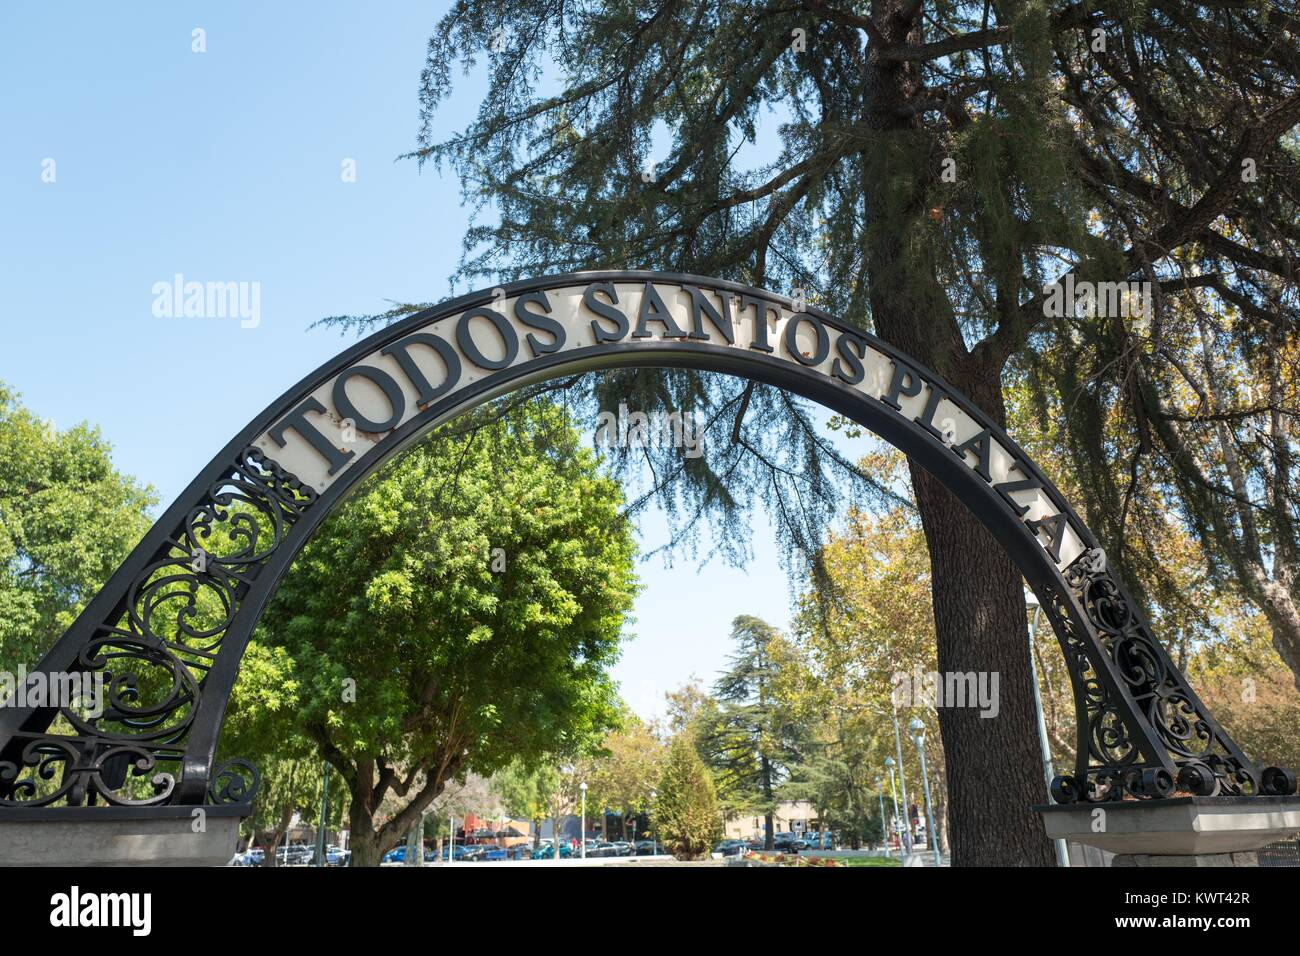 Signage for Todos Santos Plaza, a public park and focal point of the downtown area of Concord, California, September - Stock Image